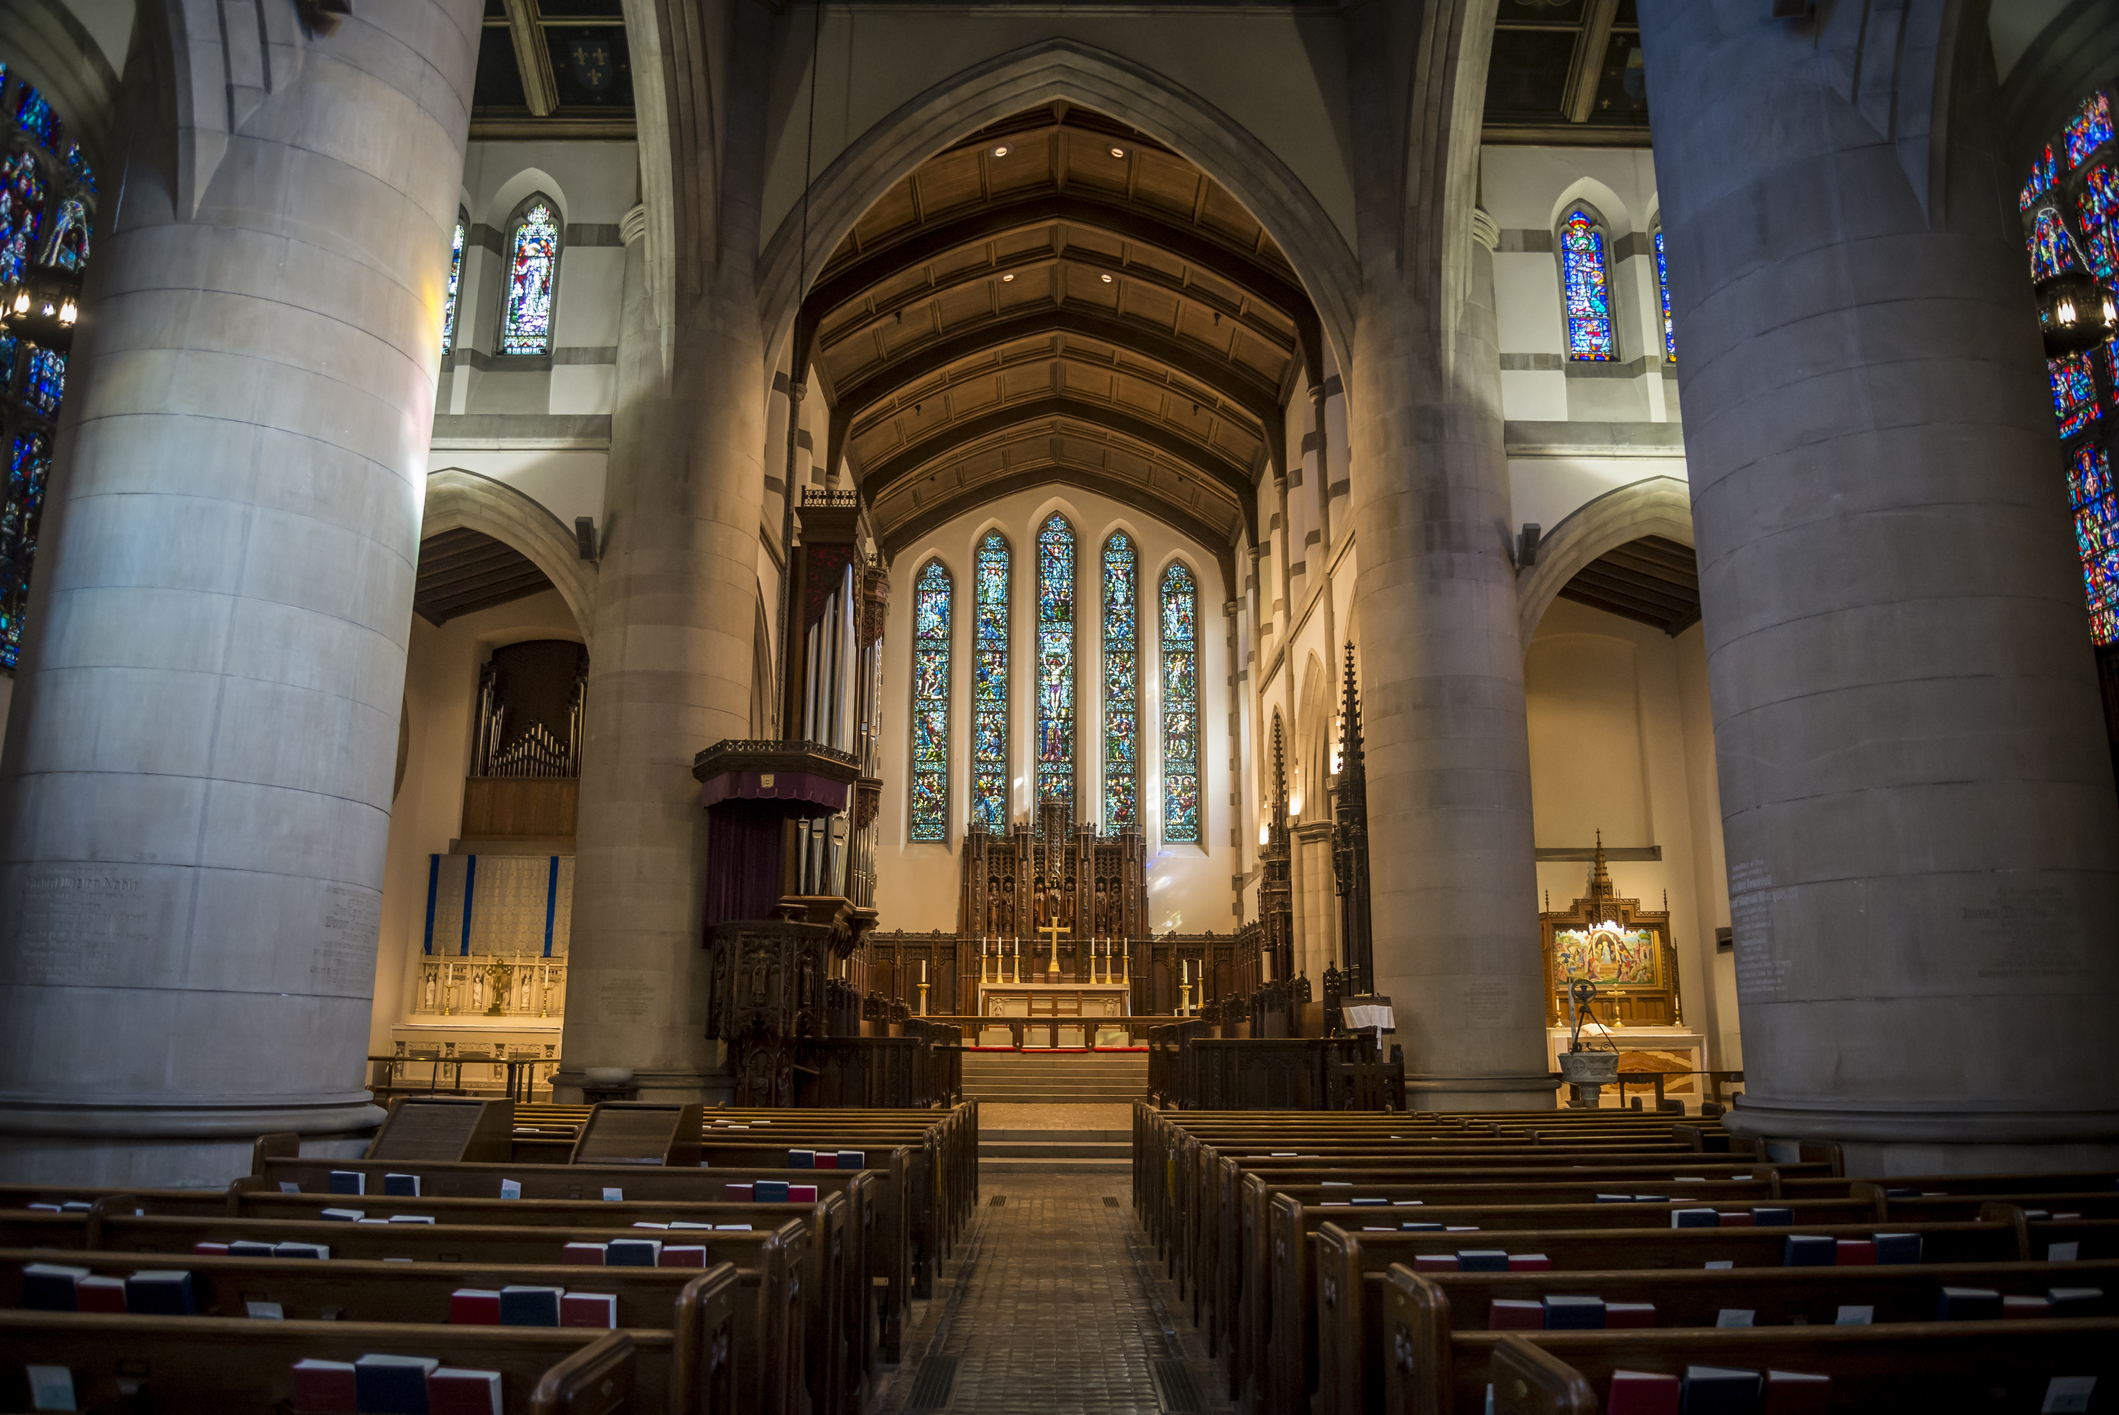 Interior of the Cathedral Church of St. Paul in Detroit, Michigan.